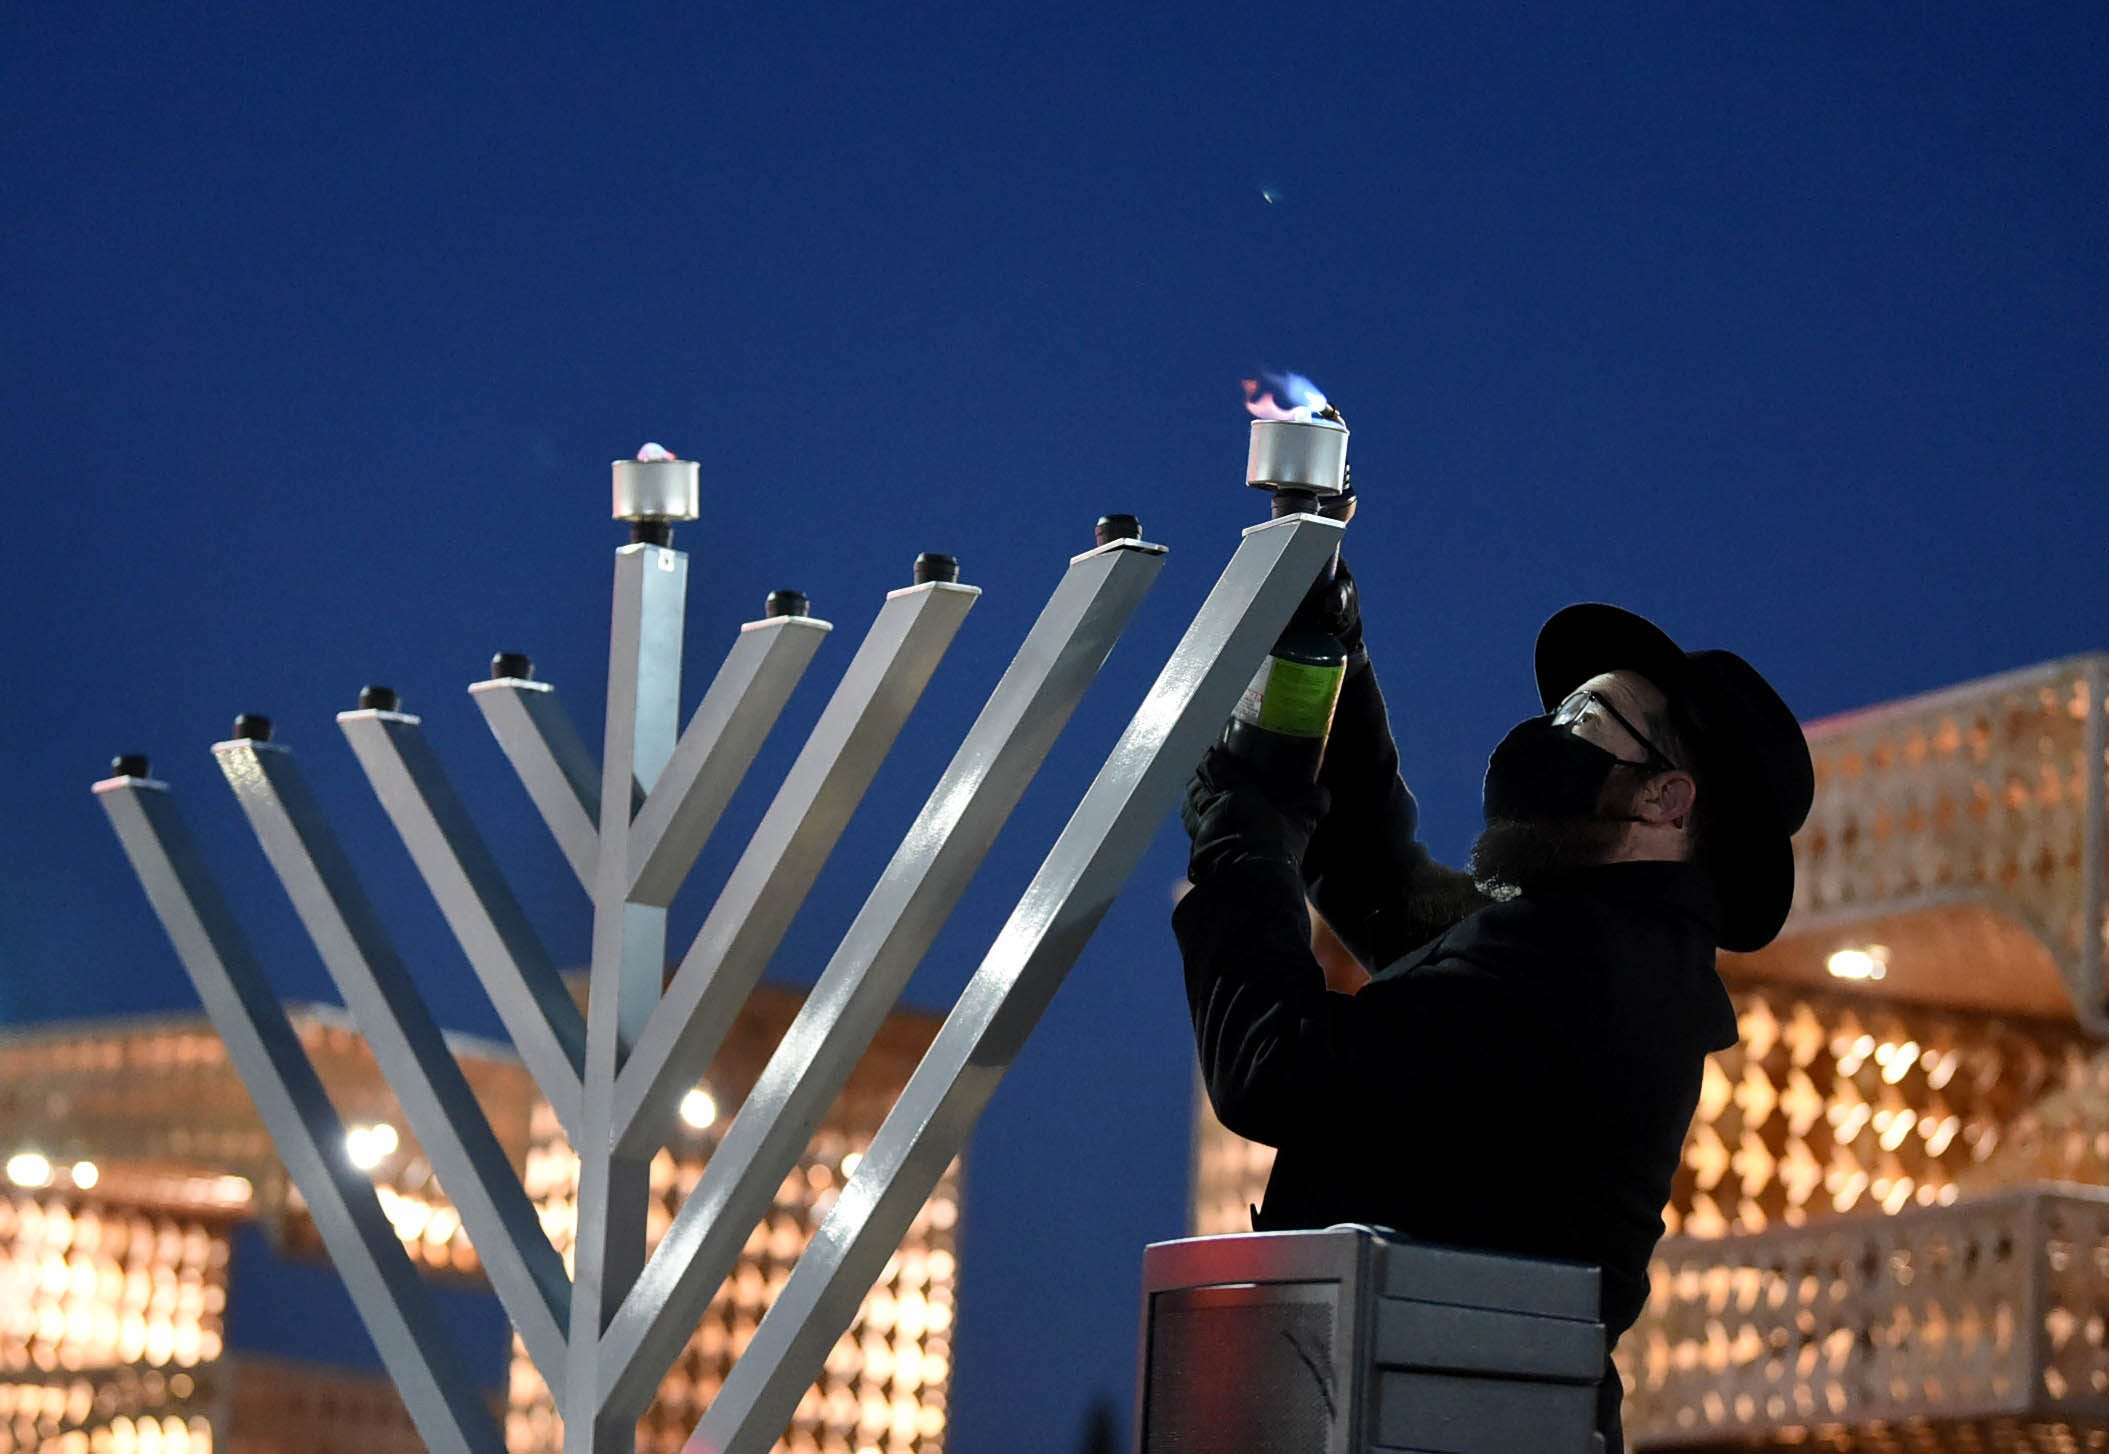 Rabbi Mendel Cunin lights the first candle of the menorah on the first day of Hanukkah during a non-public menorah lighting ceremony on the Reno City Plaza on Thursday Dec. 10, 2020.